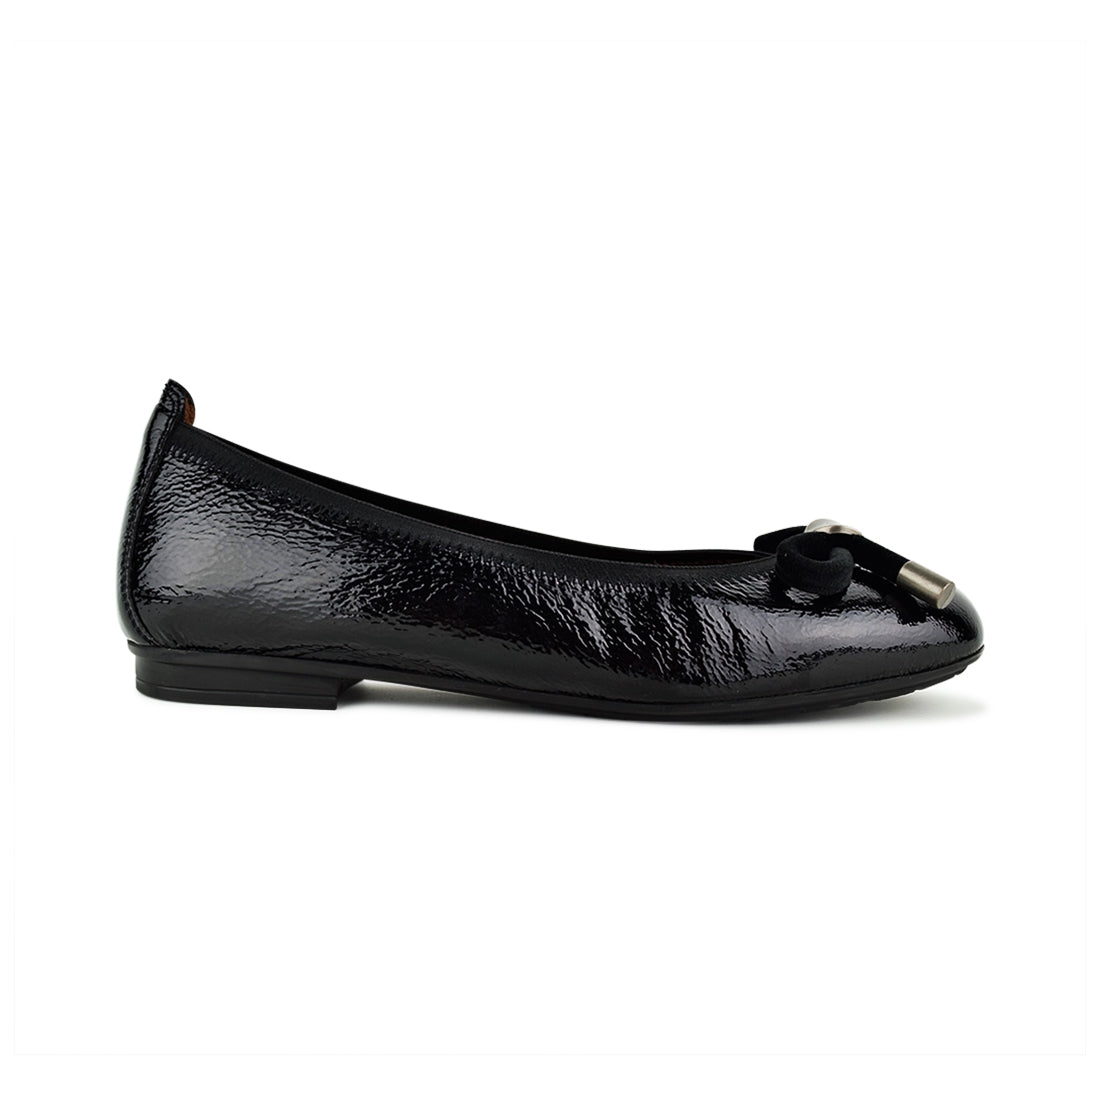 SILVI - Hispanitas Black Patent